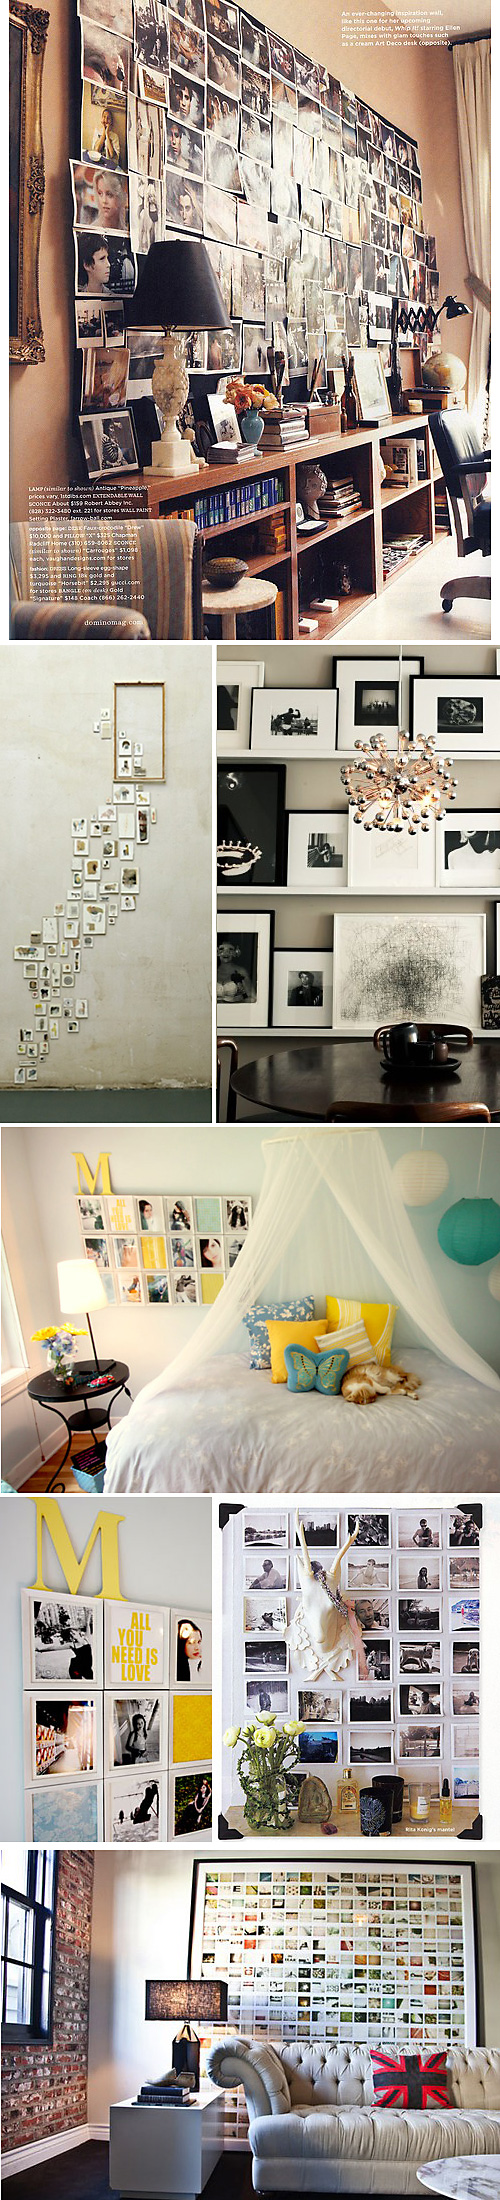 inspo board: photo walls